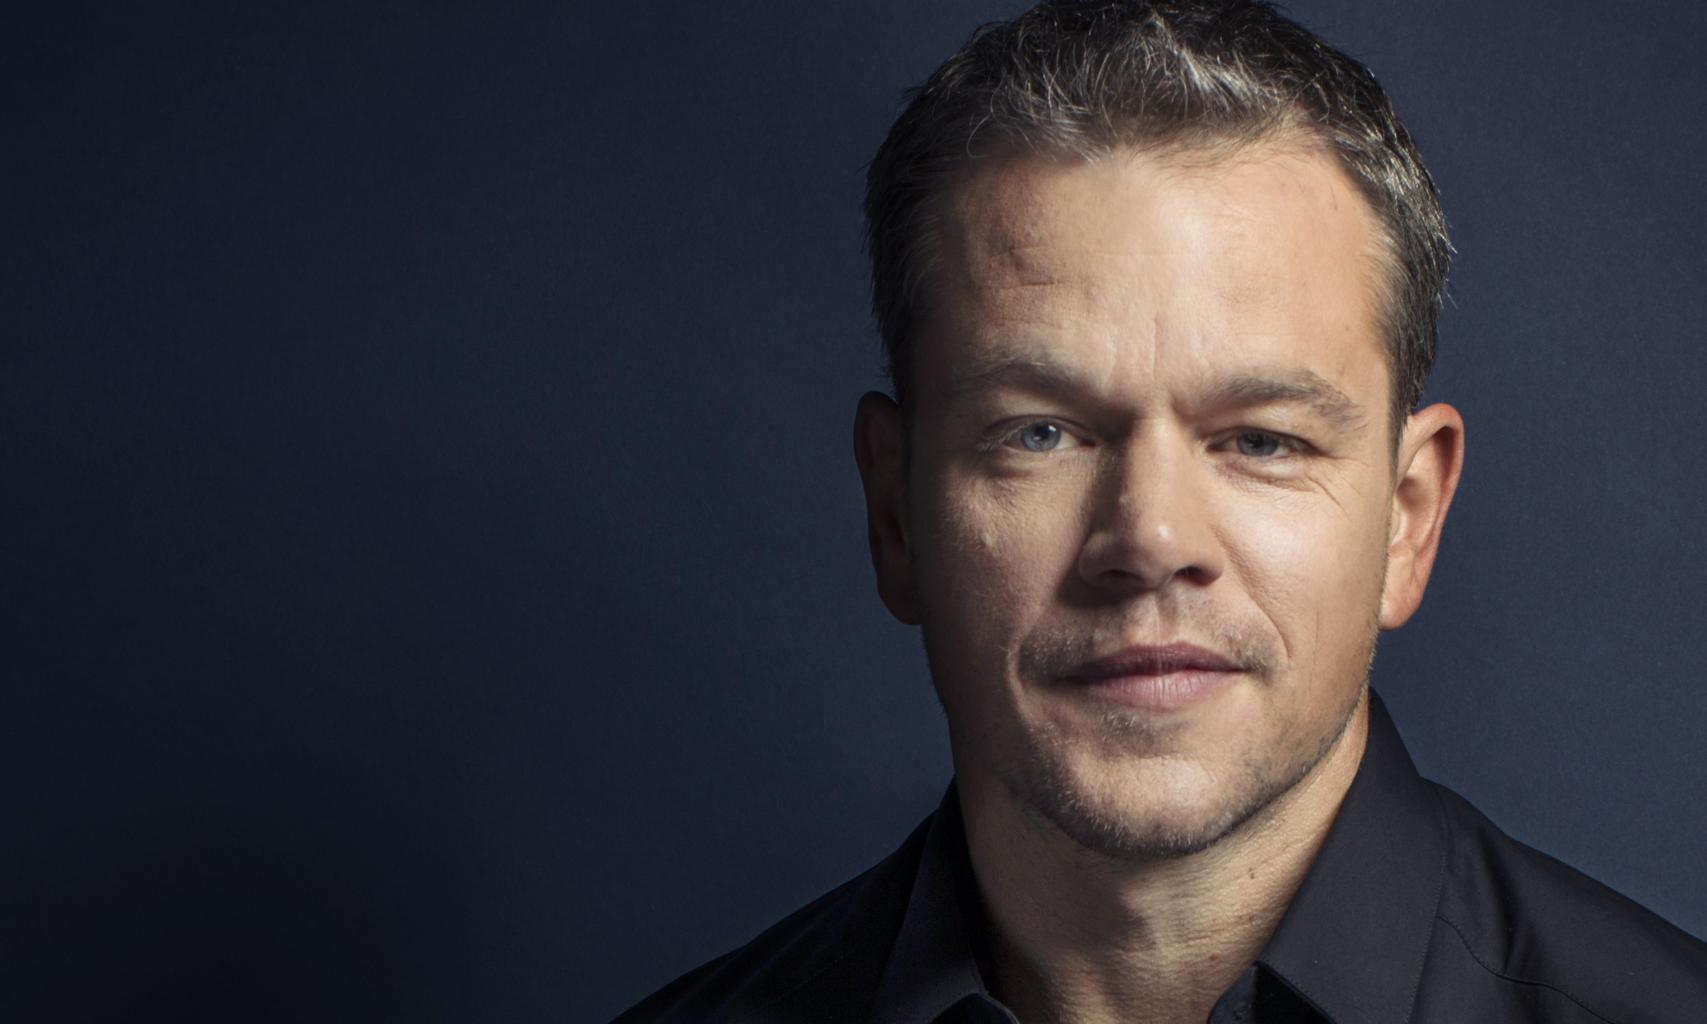 Matt Damon Defends Comments On Gay Actors After Backlash   Film